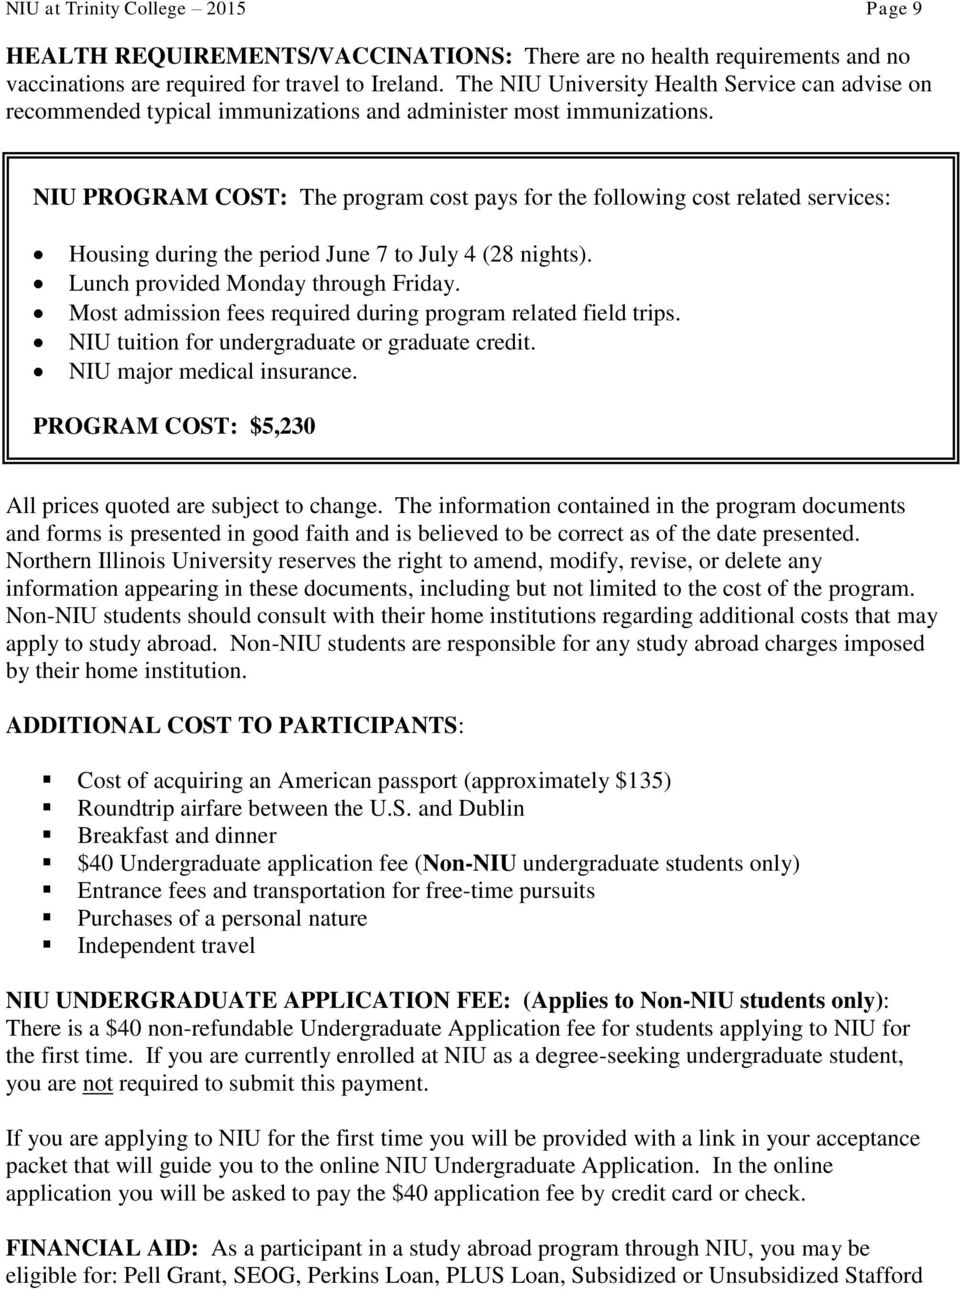 NIU PROGRAM COST: The program cost pays for the following cost related services: Housing during the period June 7 to July 4 (28 nights). Lunch provided Monday through Friday.